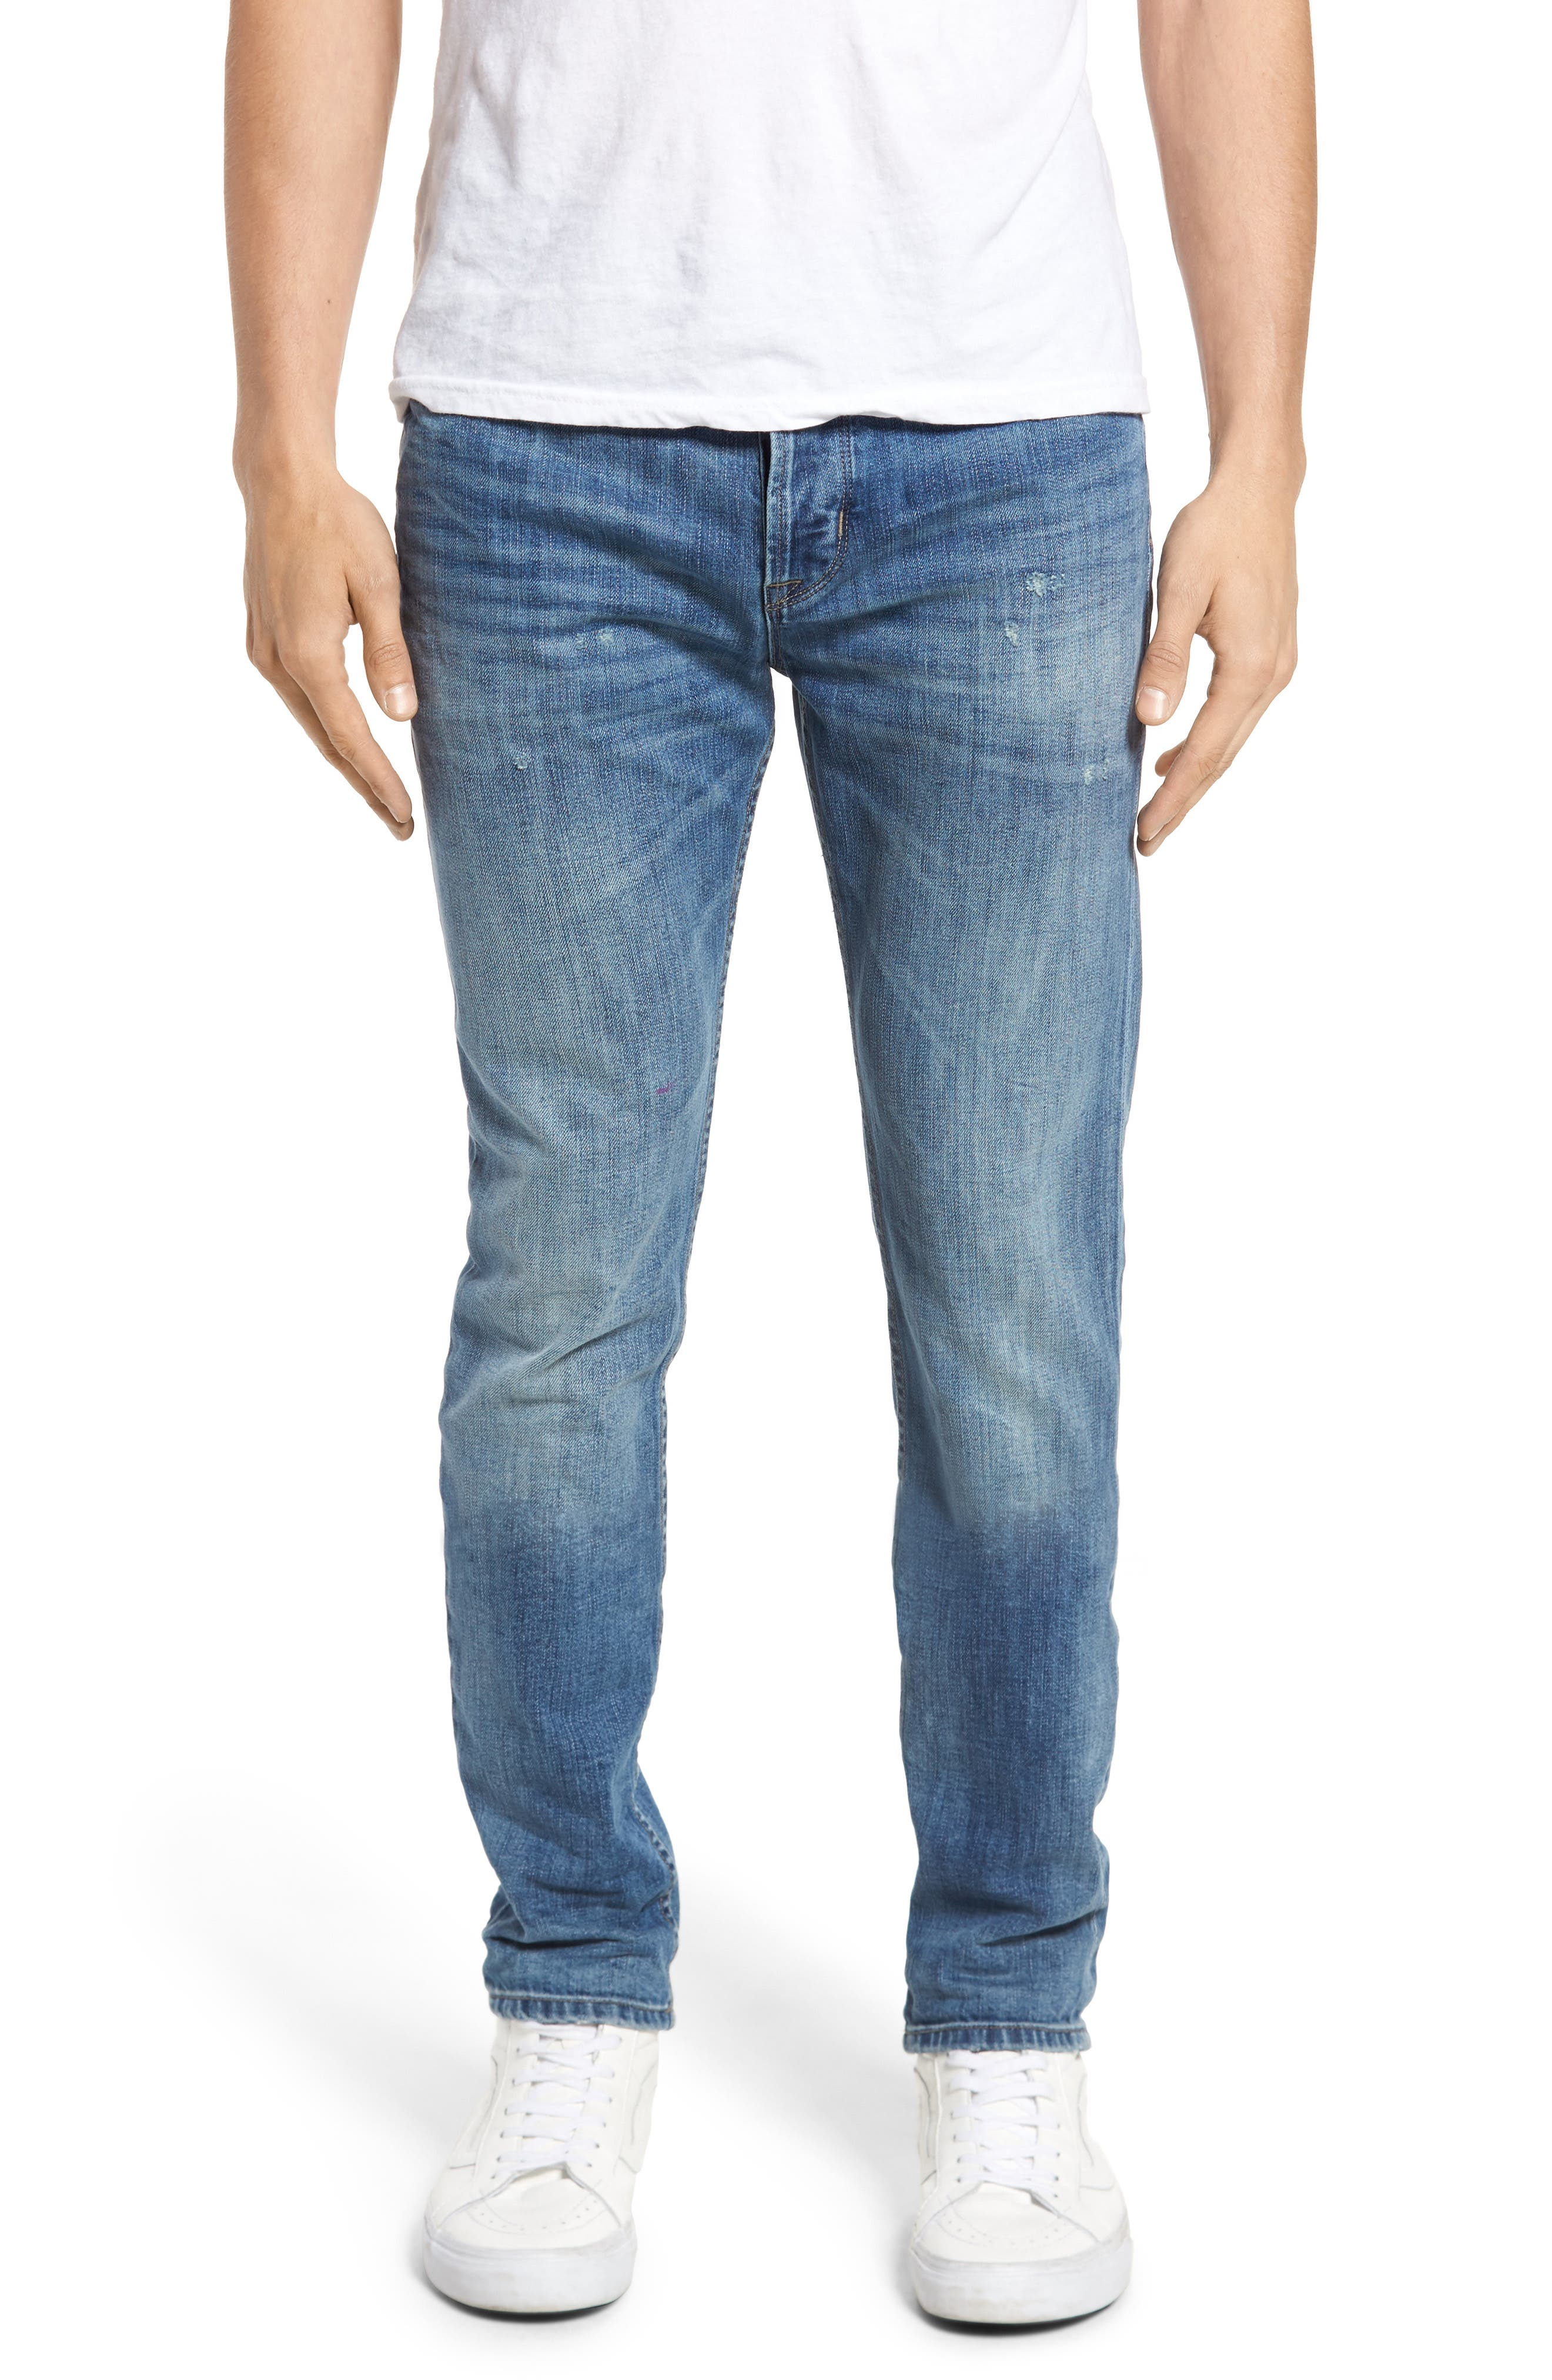 Axl Skinny Fit Jeans,                             Main thumbnail 1, color,                             RACKING